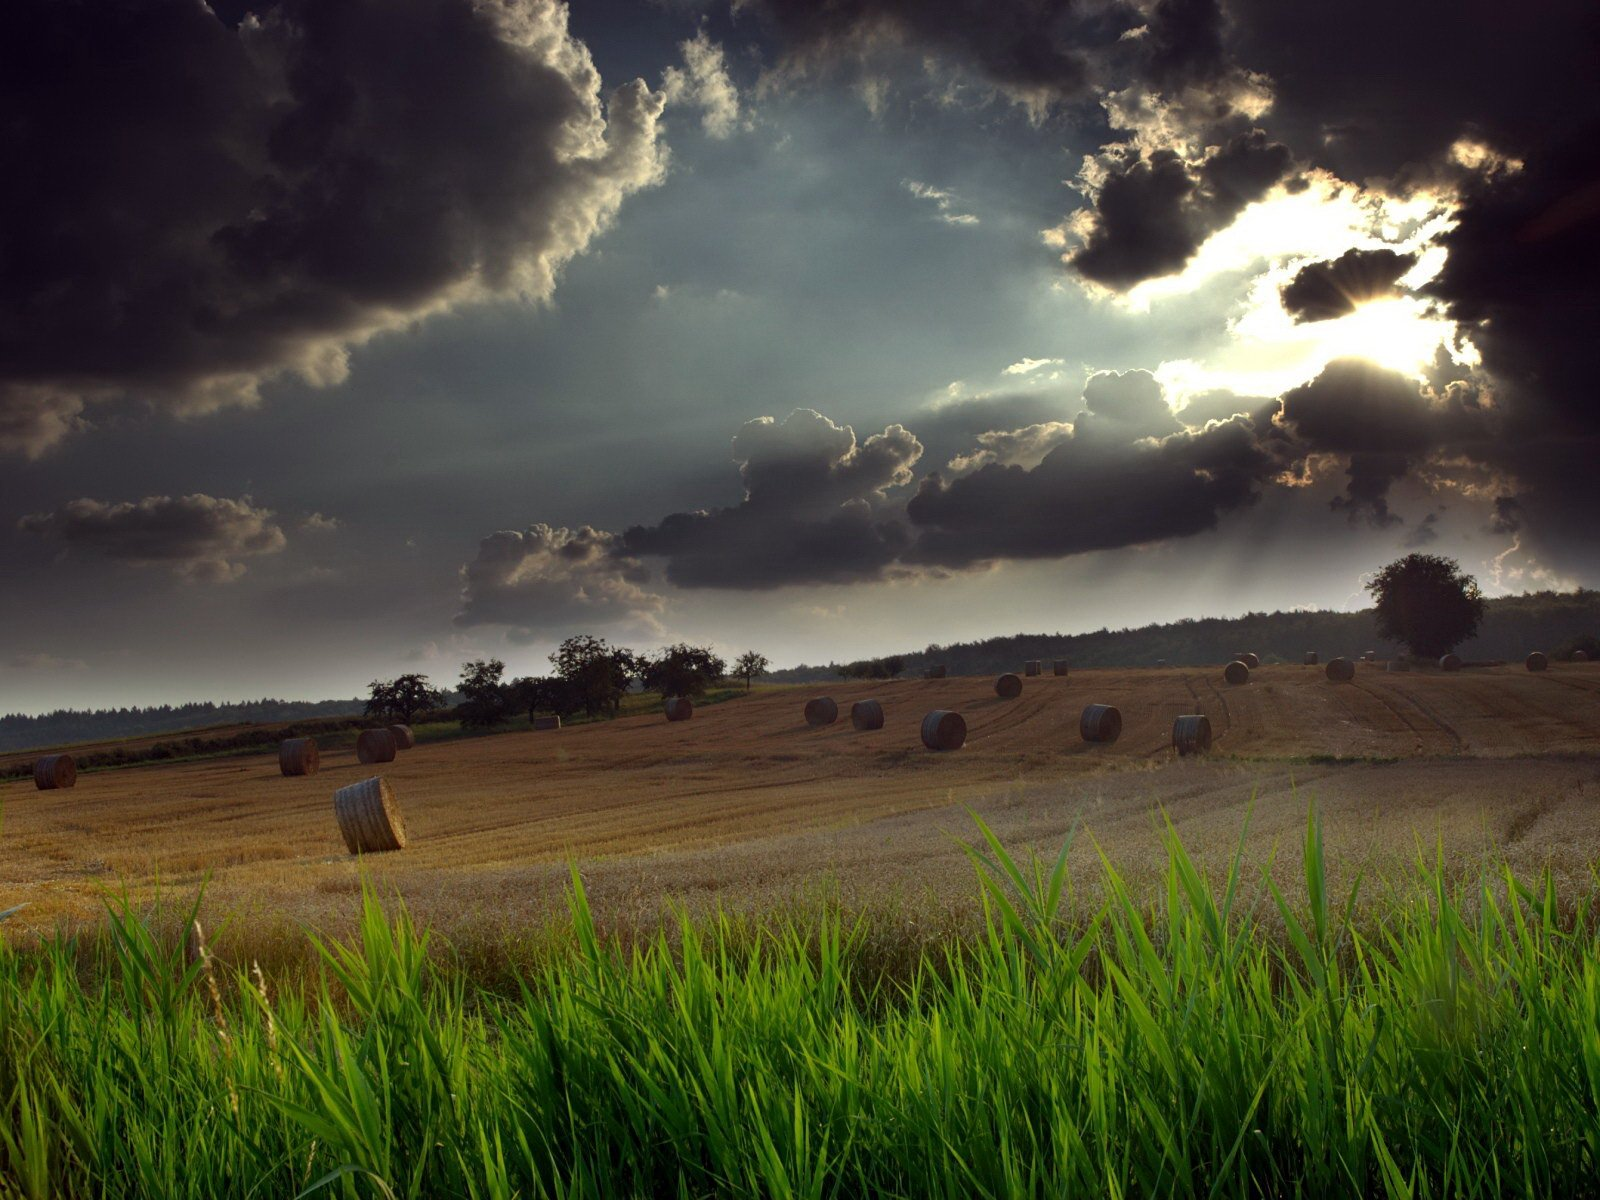 Thunderstorm above the field wallpaper   Nature wallpapers 1600x1200